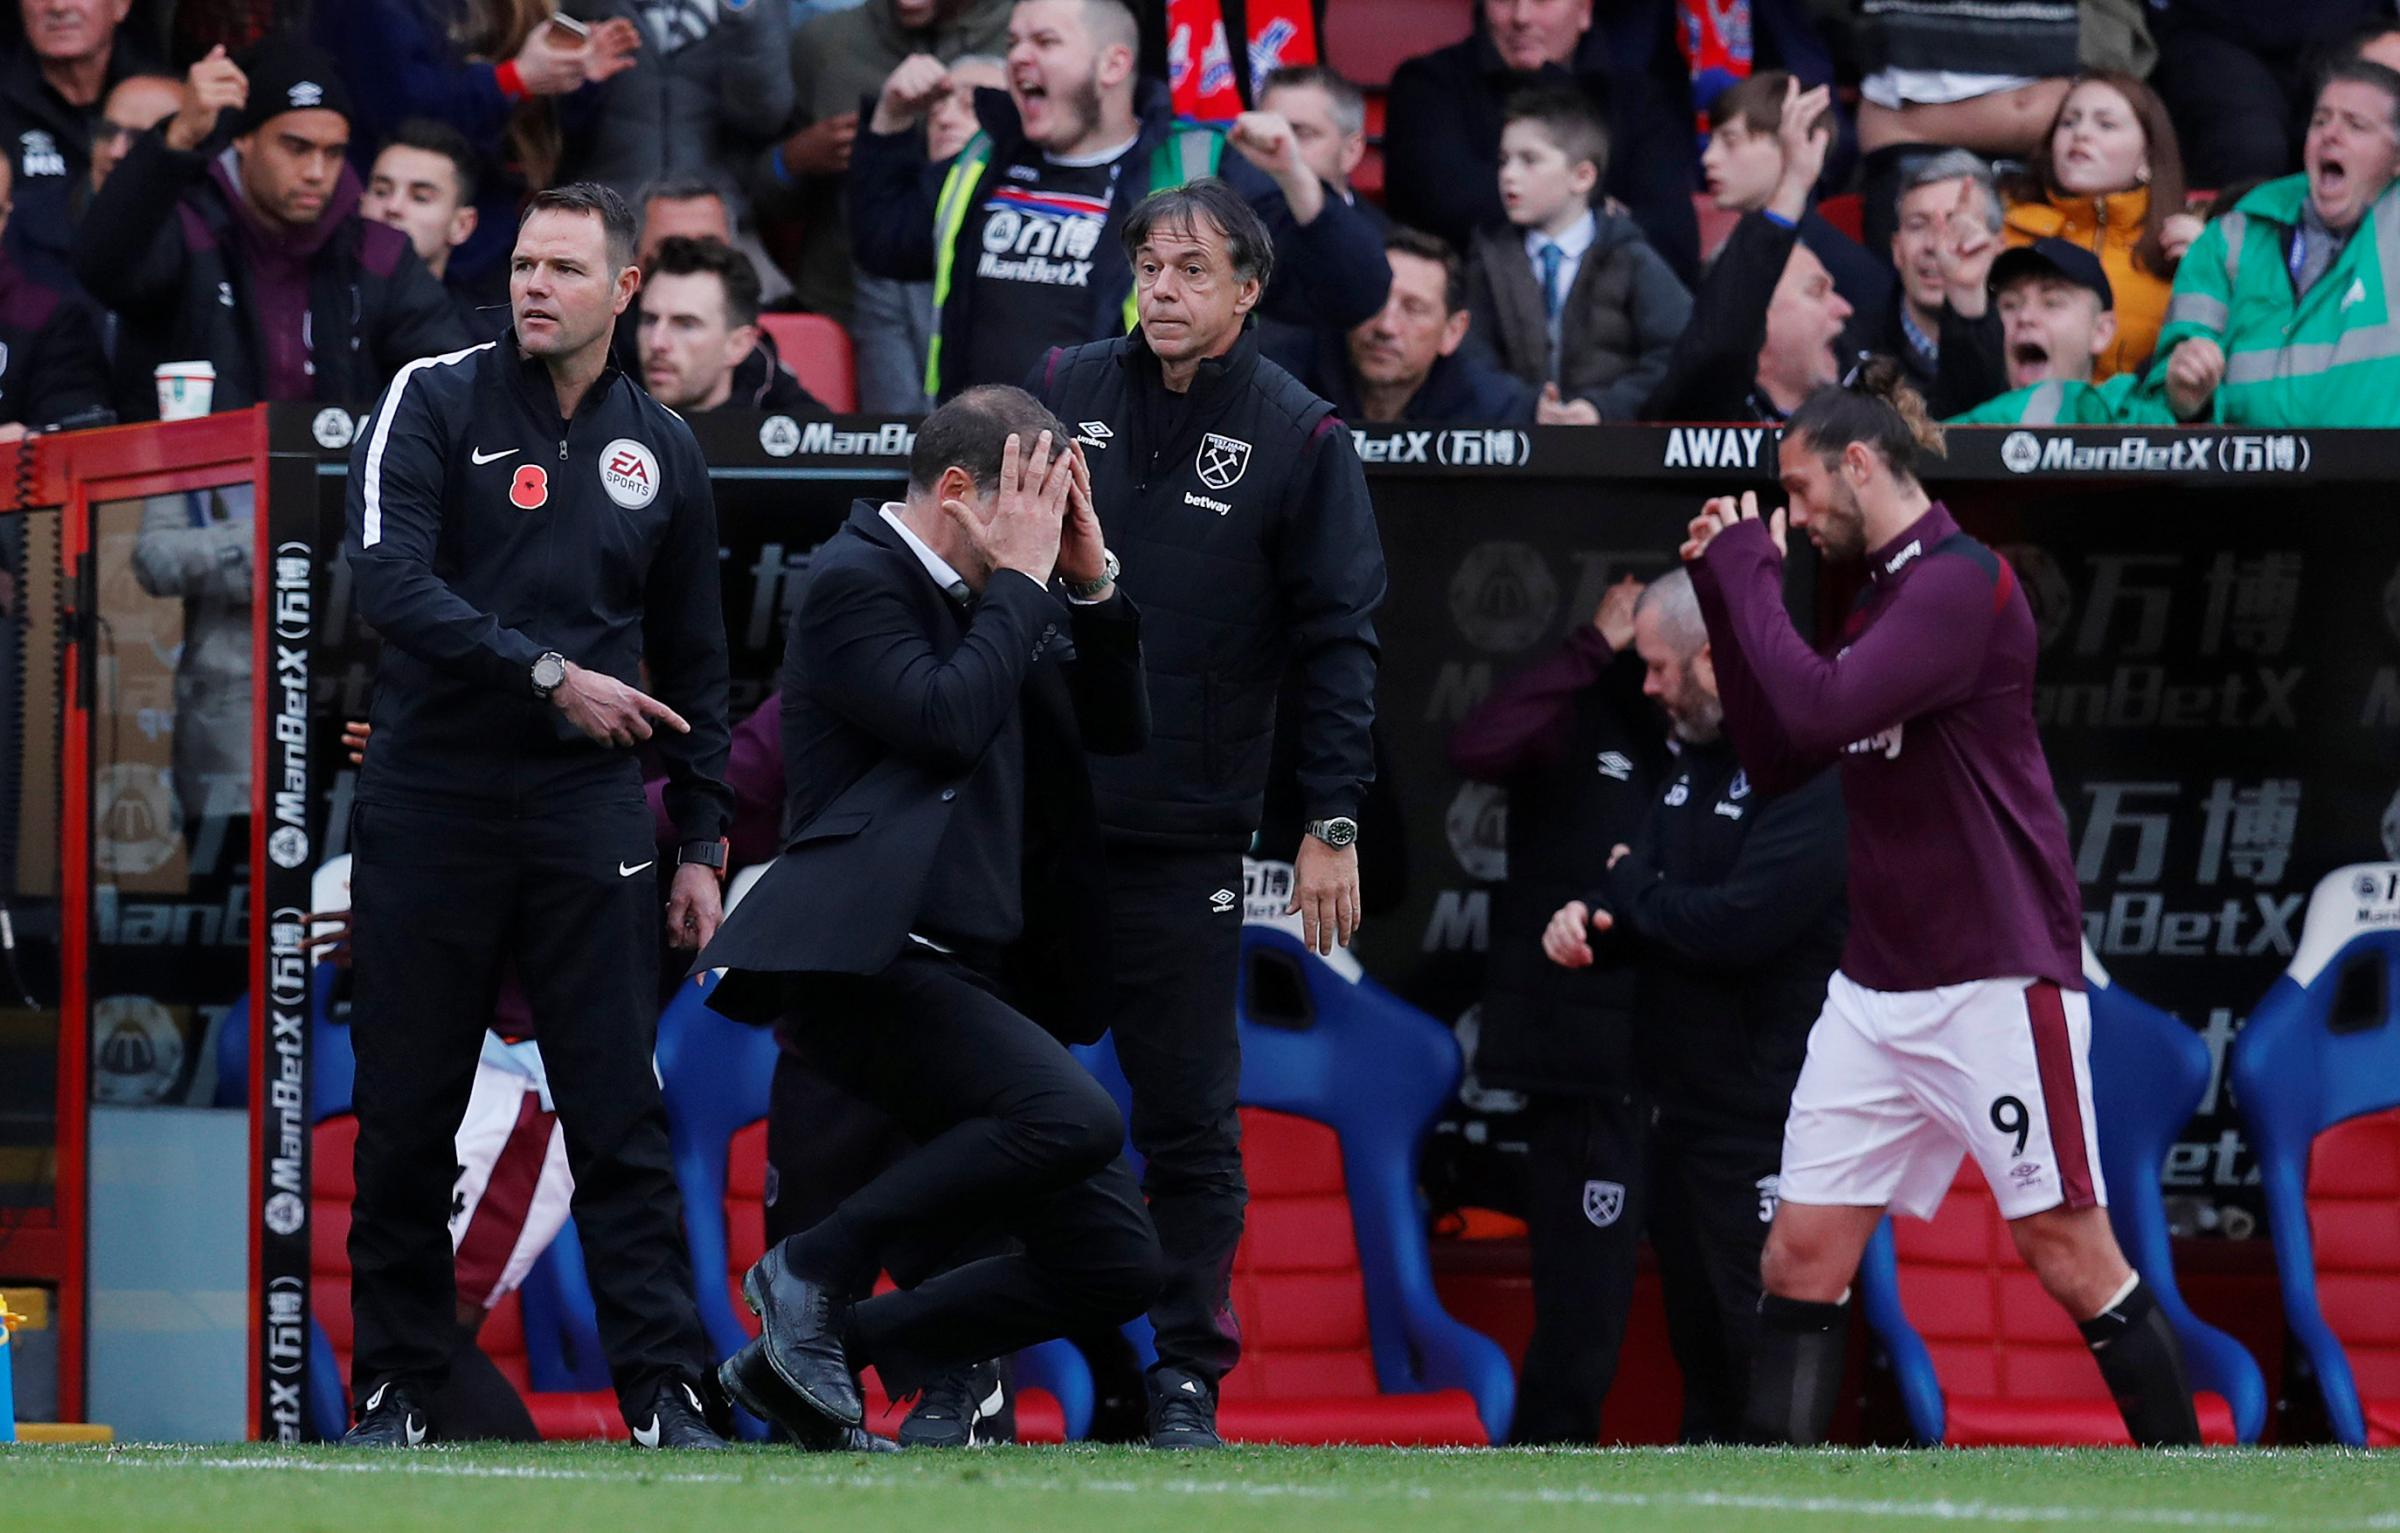 Head in hands: Slaven Bilic reacts to Crystal Palace's injury-time equaliser. Picture: Action Images